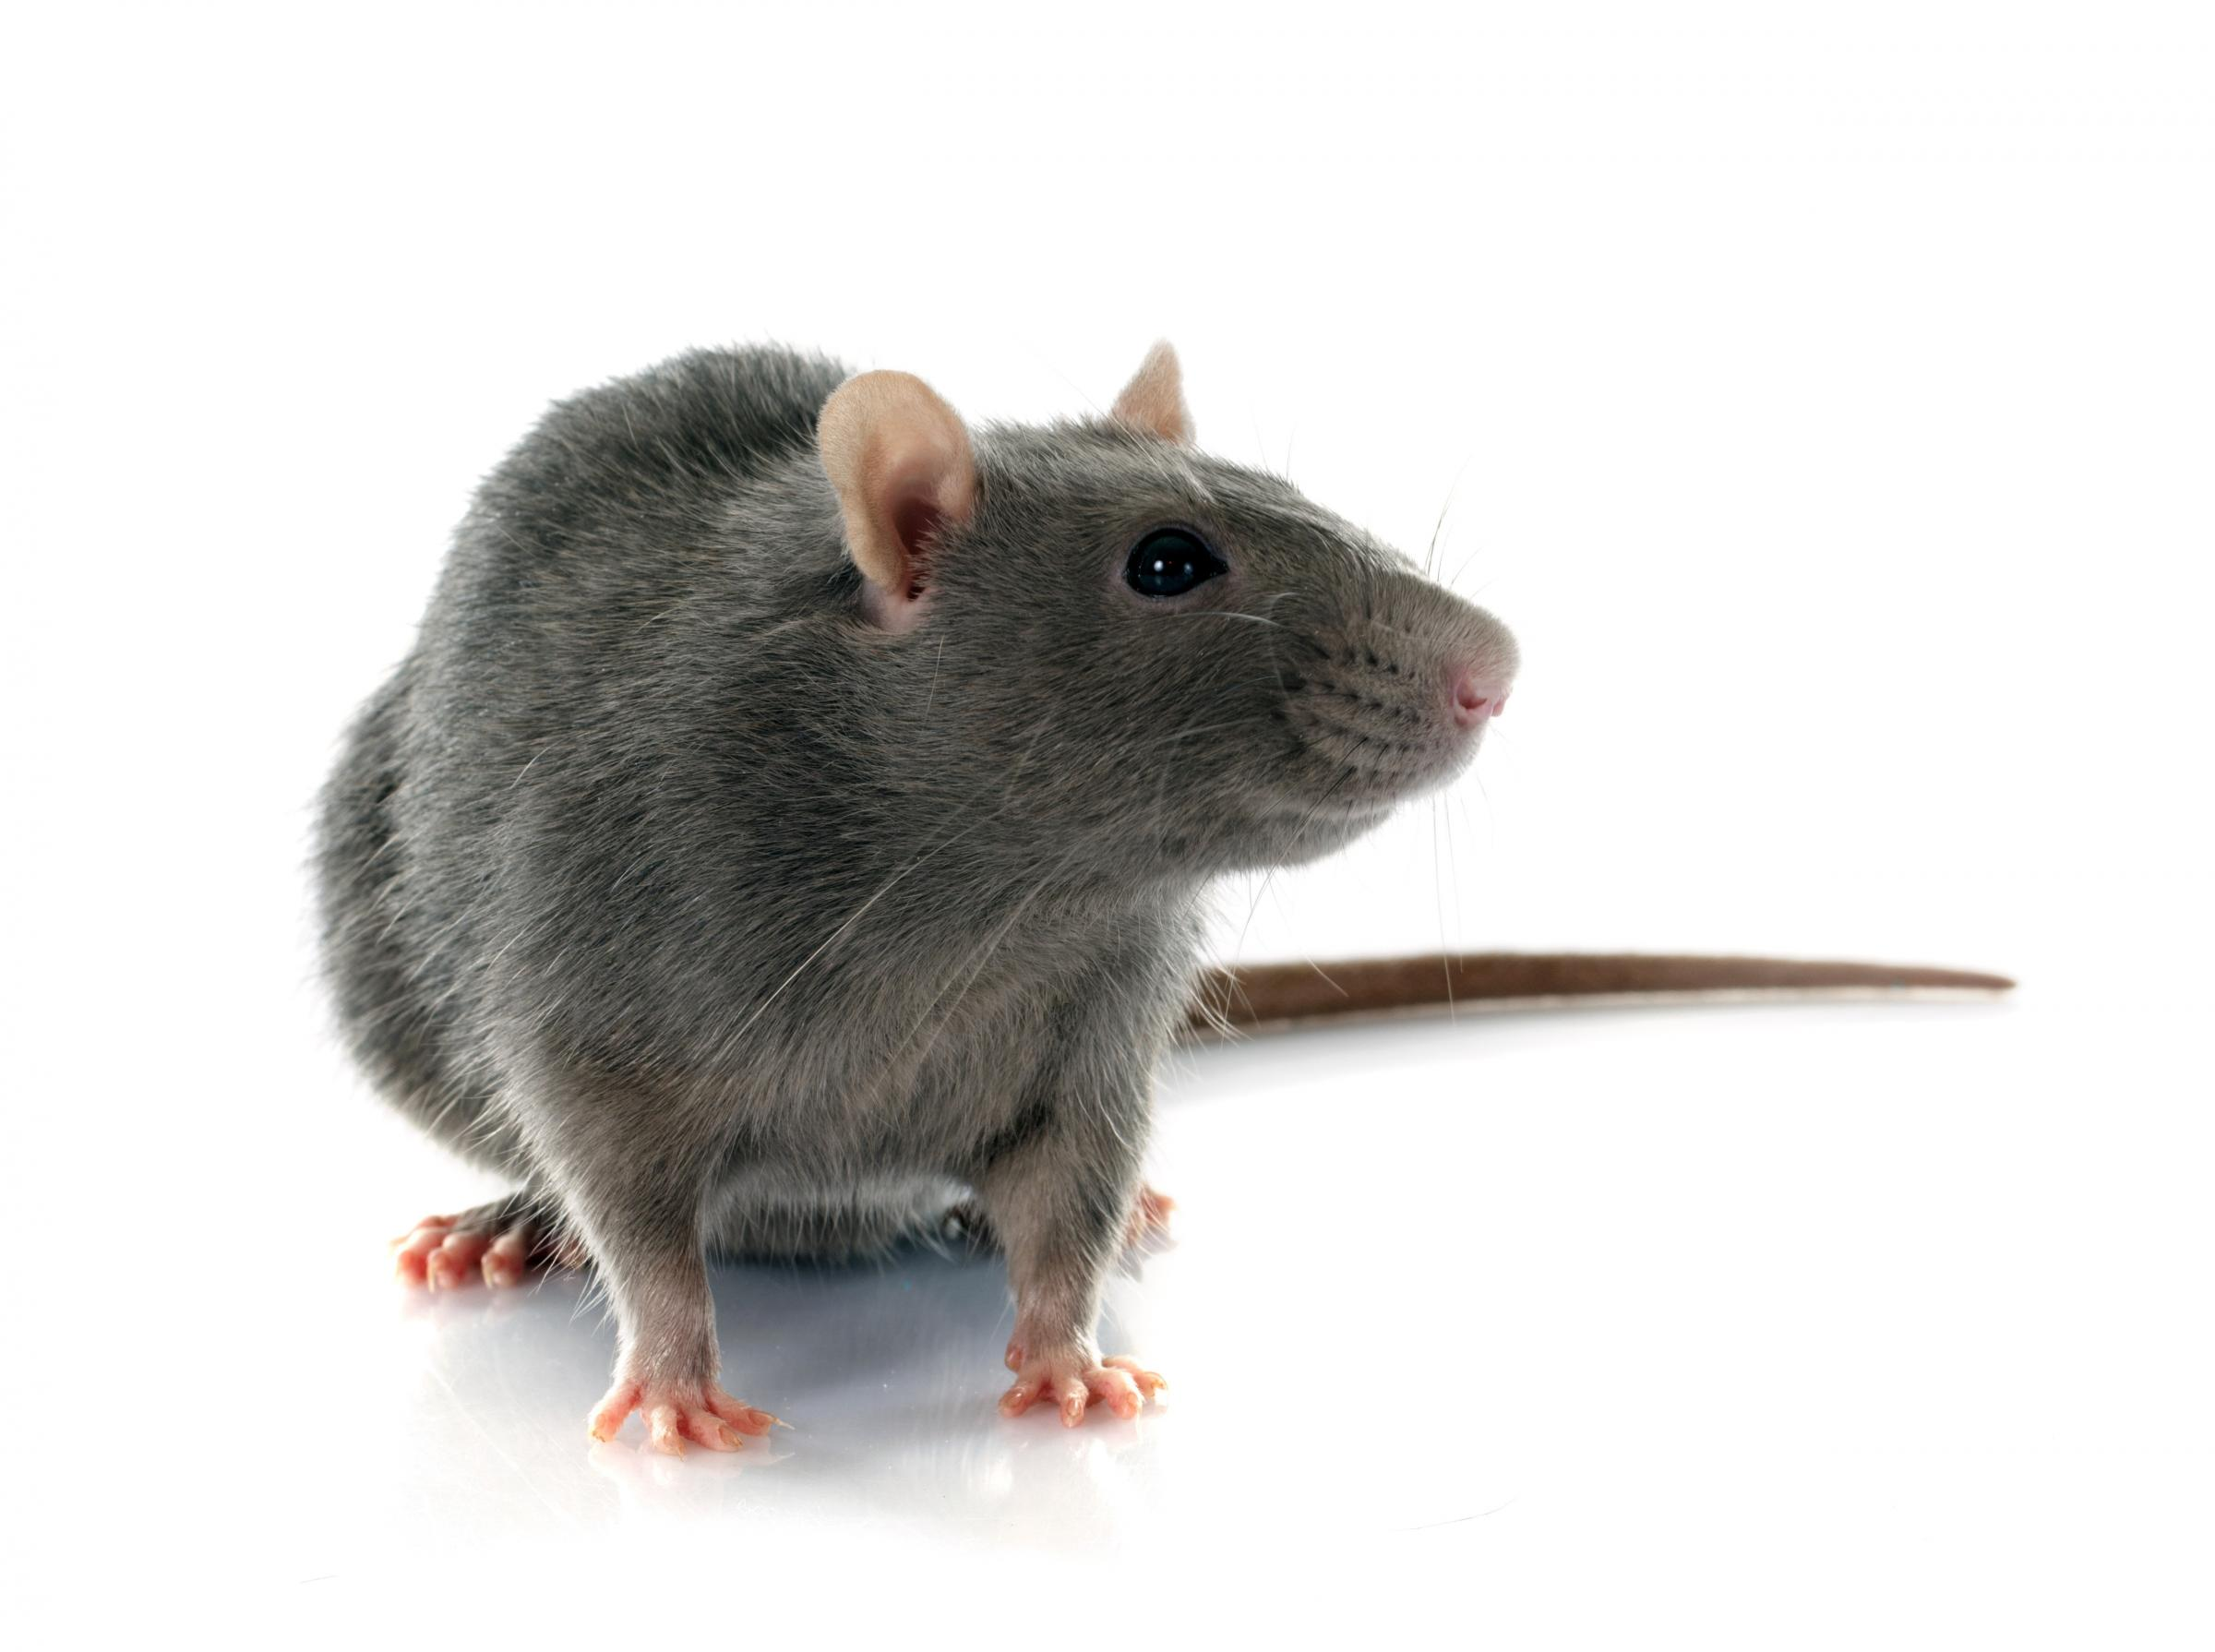 No count for rats in Glasgow for 12 years